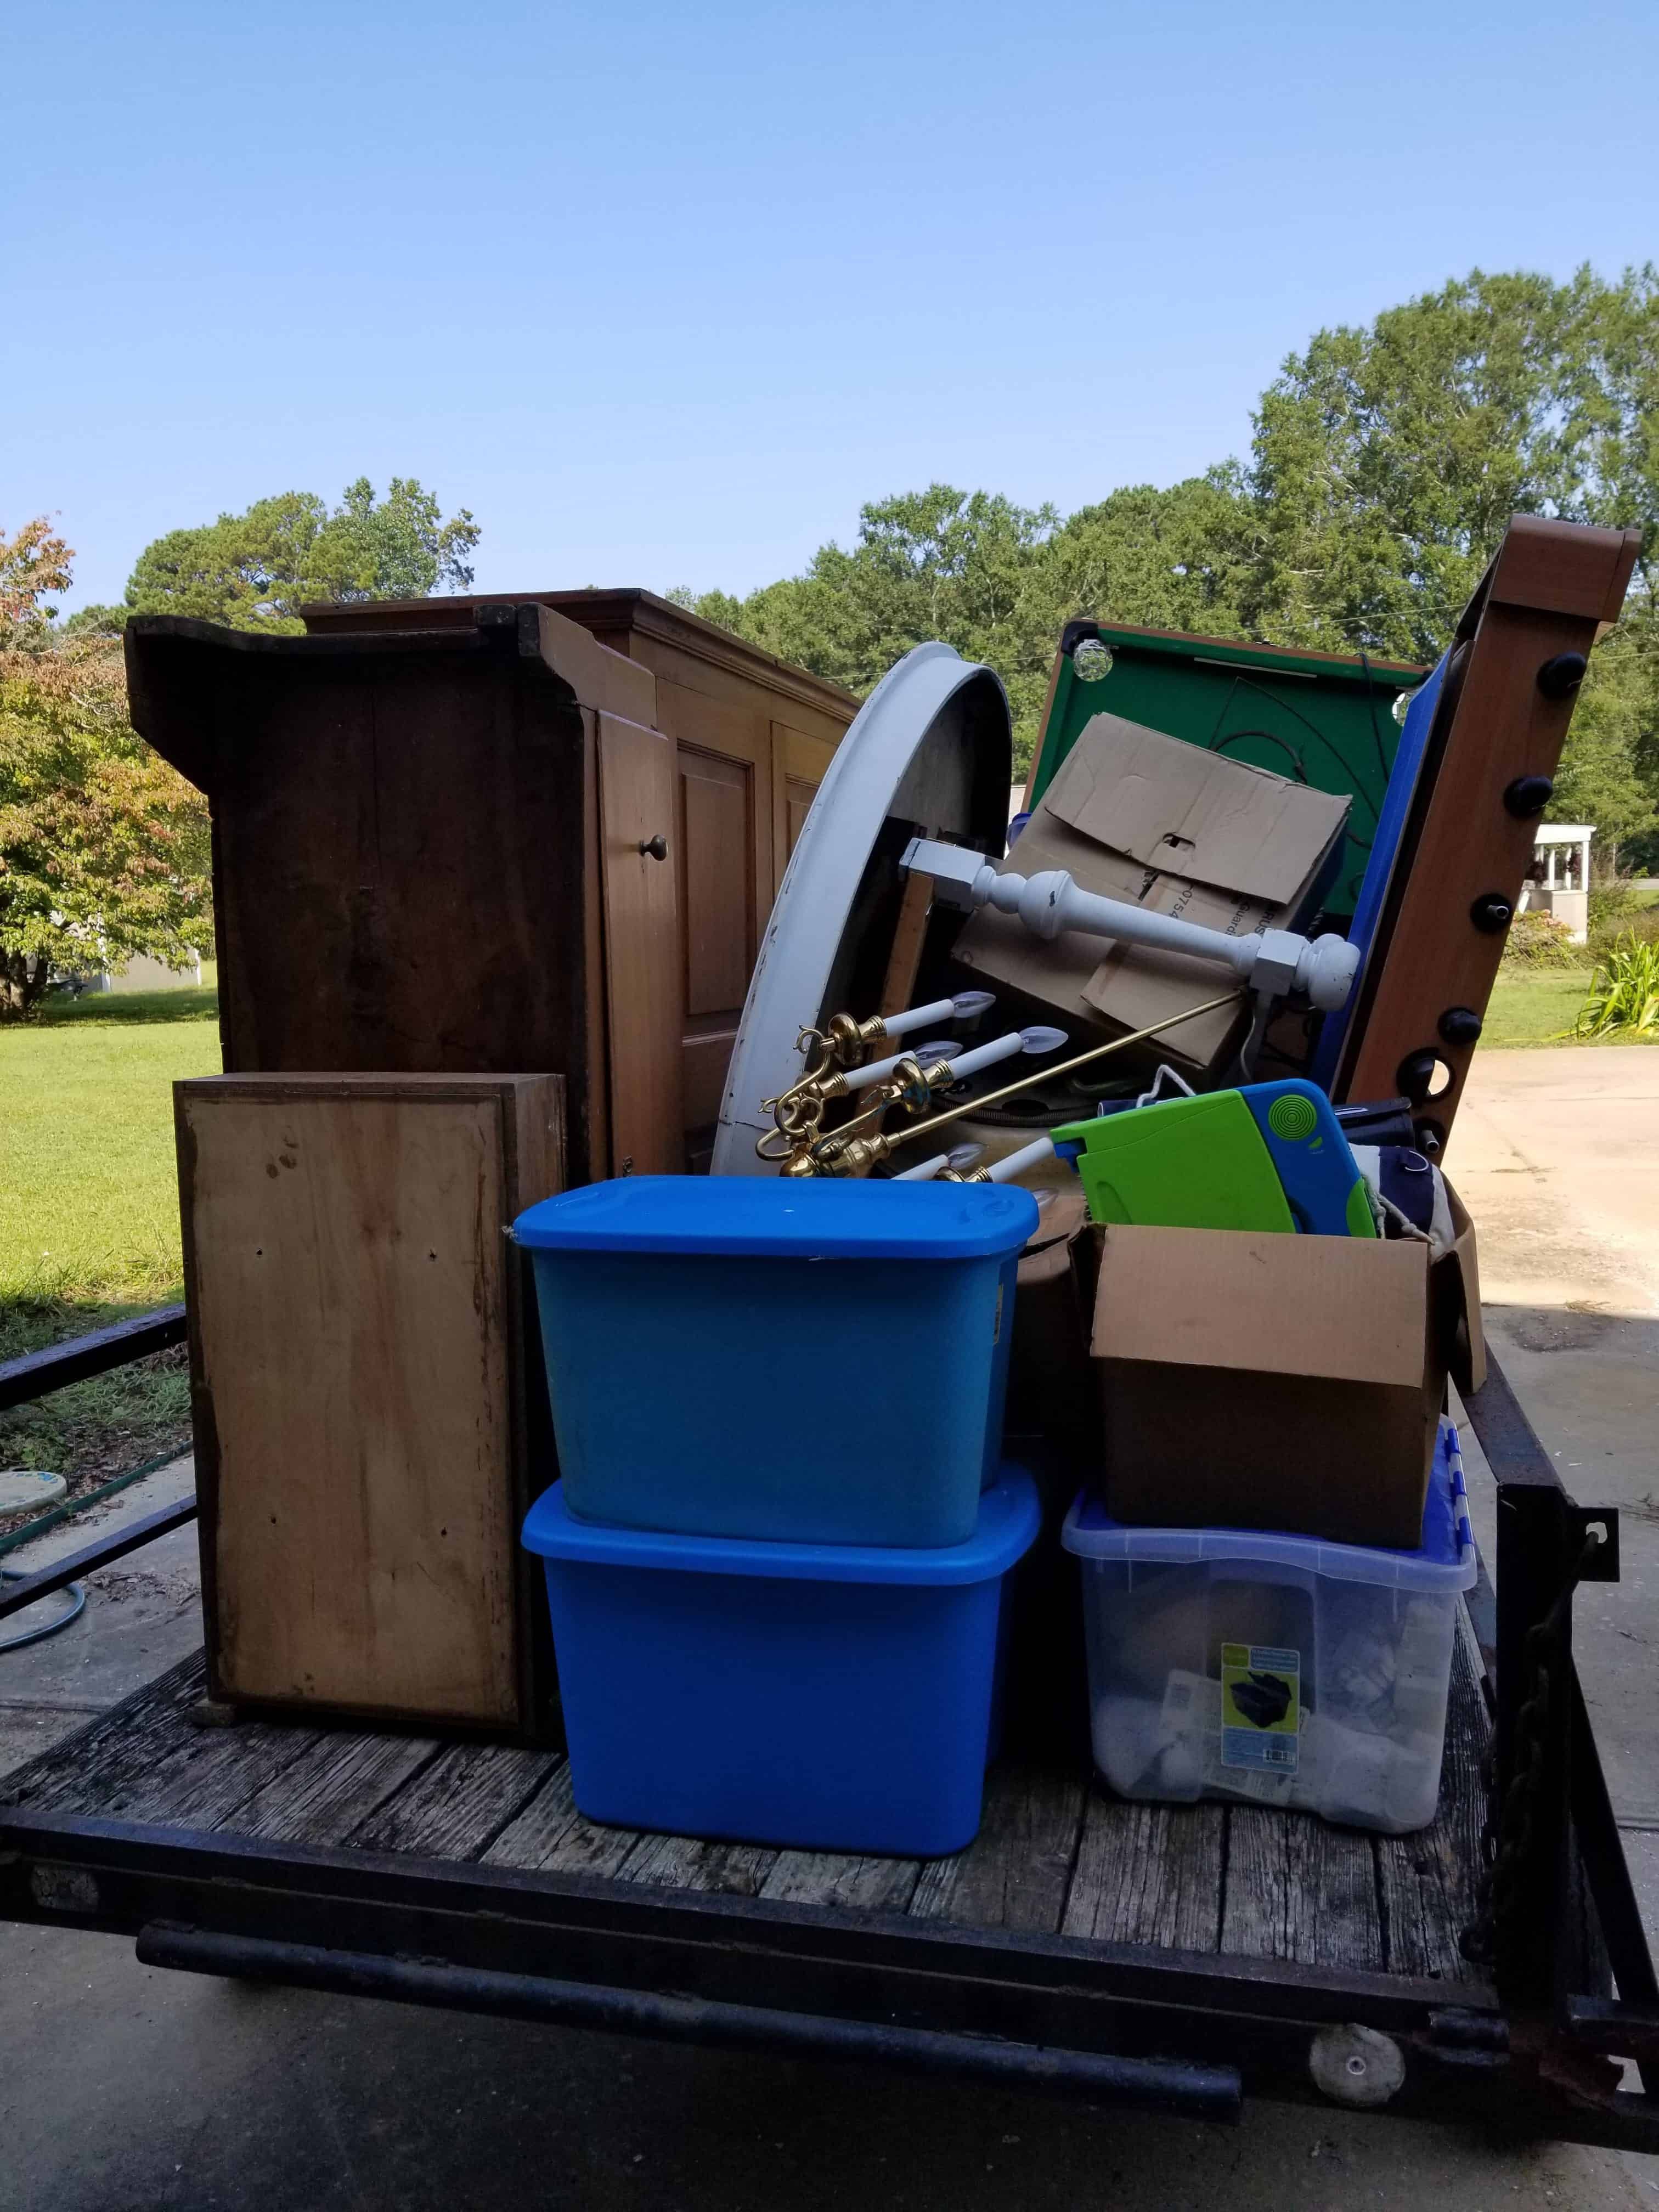 Yard Sales, Making cash for travel, clearing out stuff